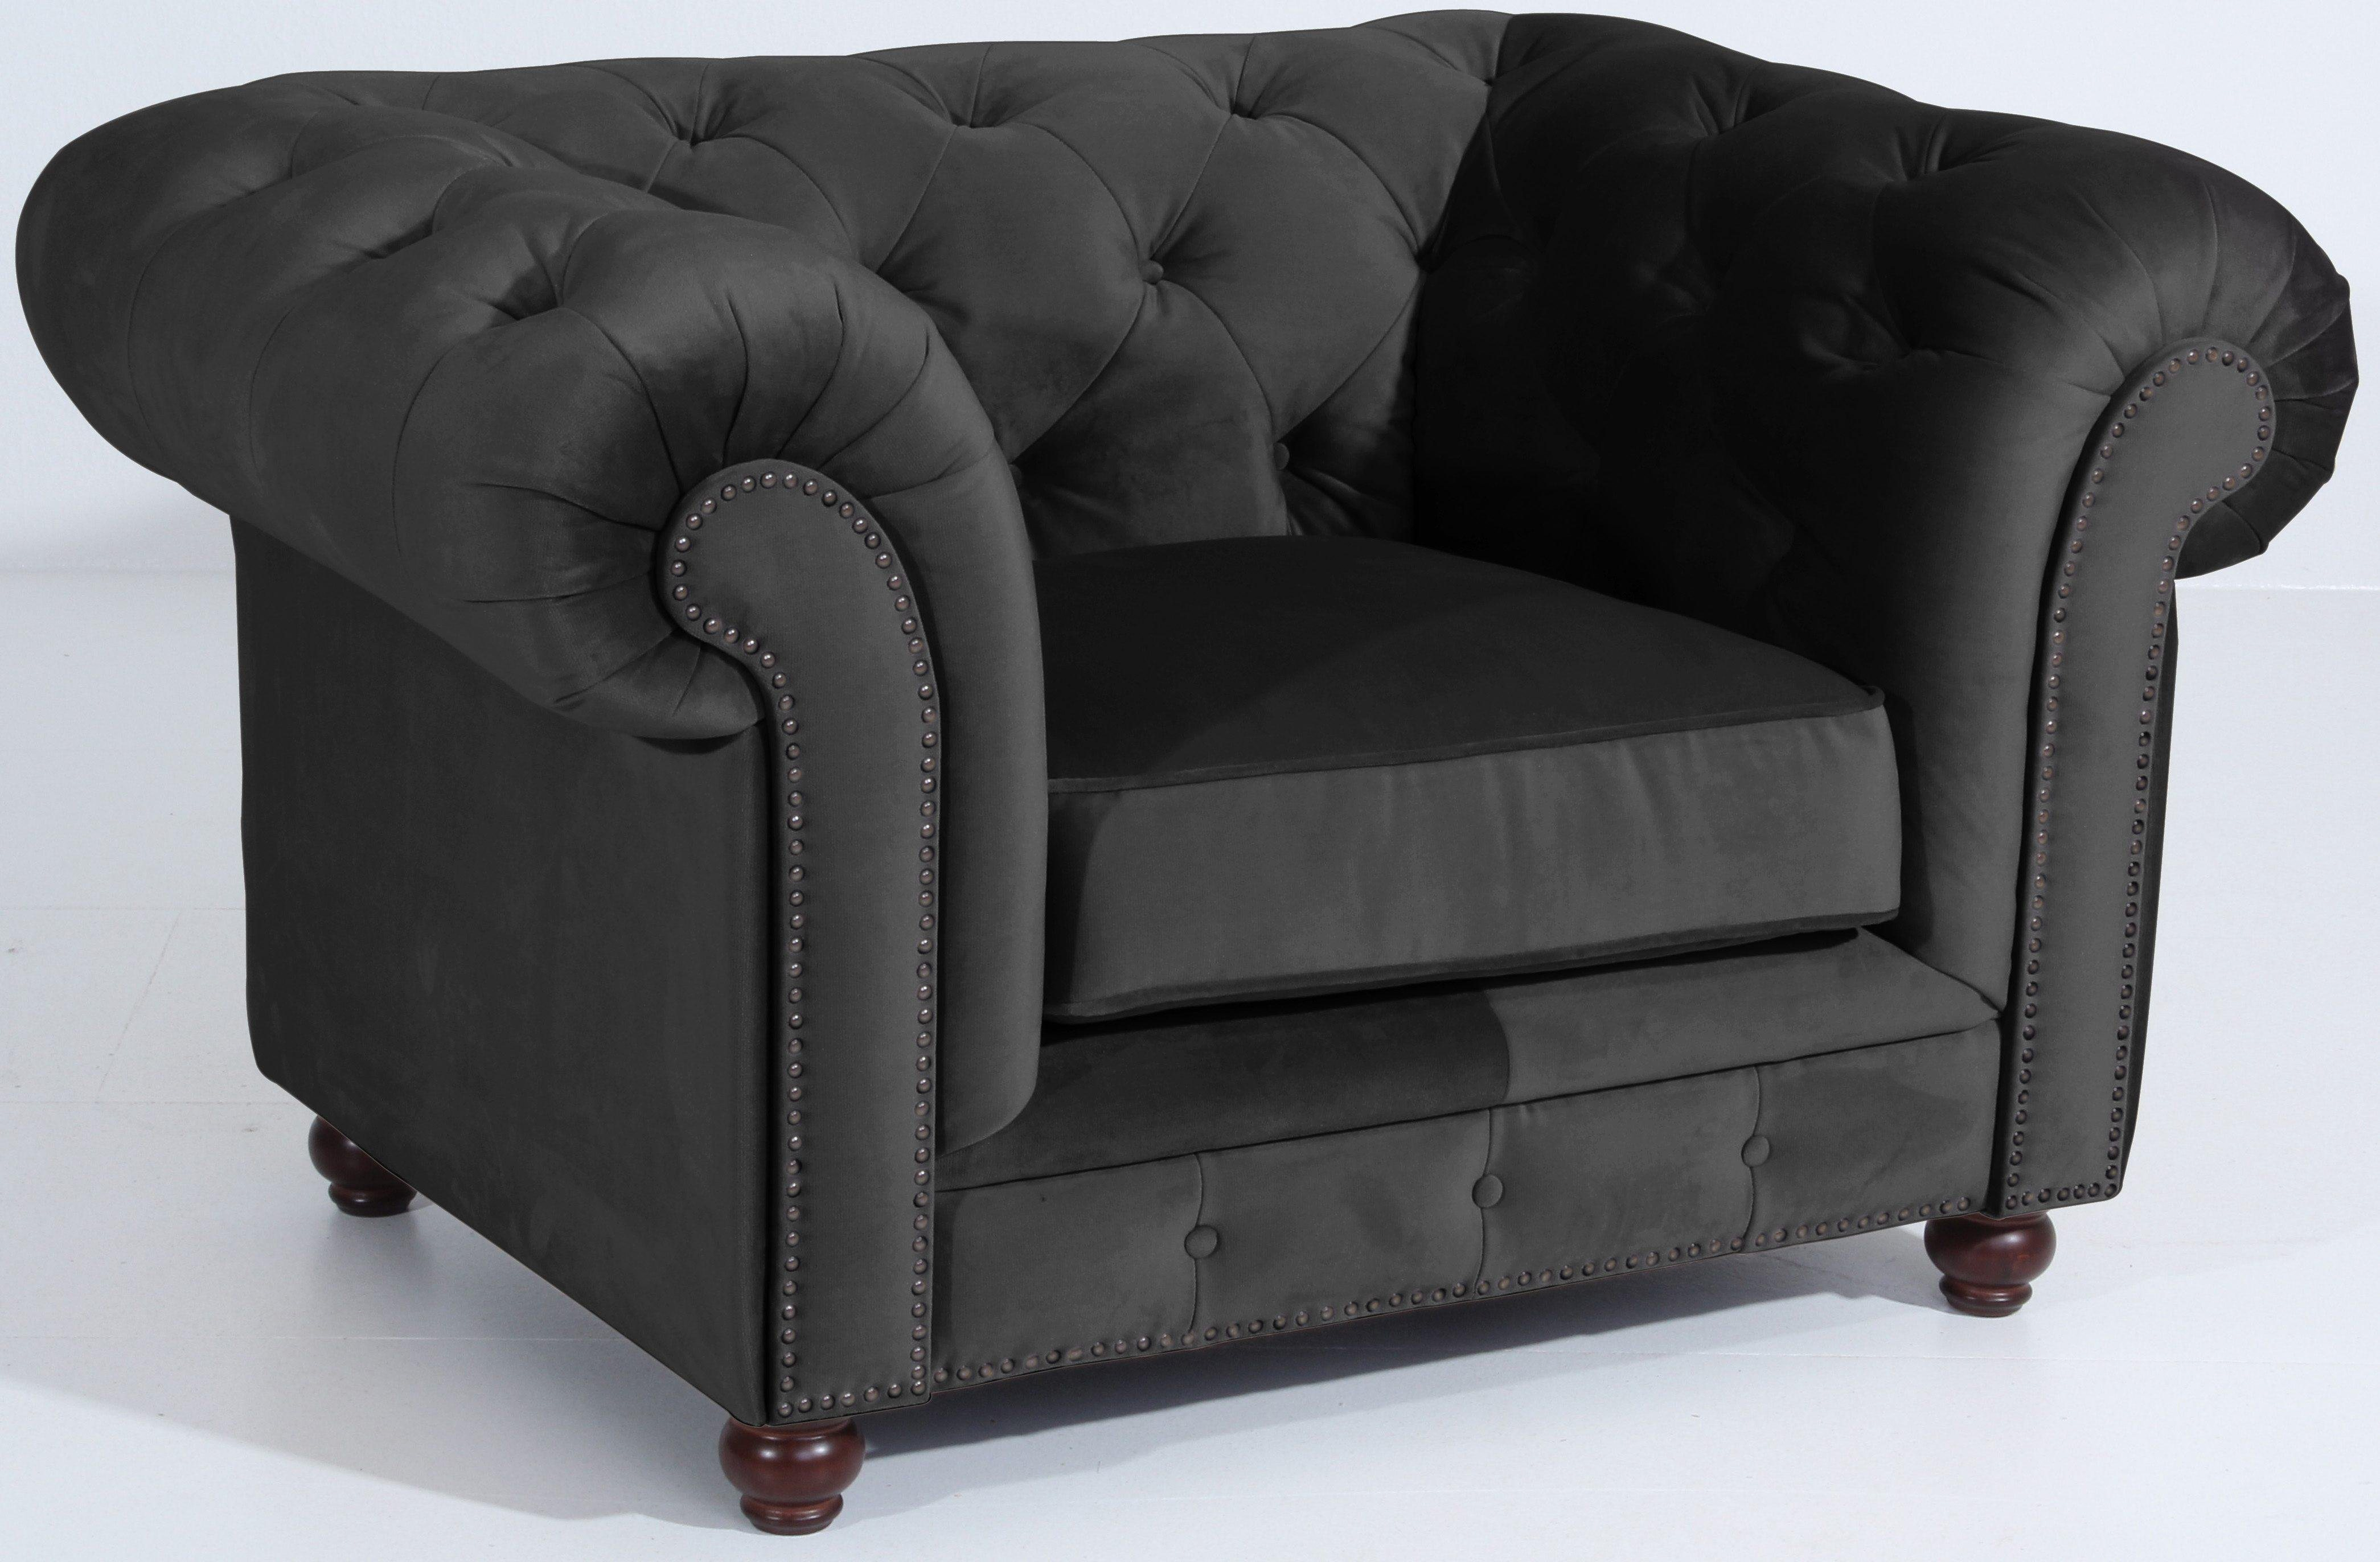 polyester chesterfield sessel online kaufen m bel suchmaschine. Black Bedroom Furniture Sets. Home Design Ideas